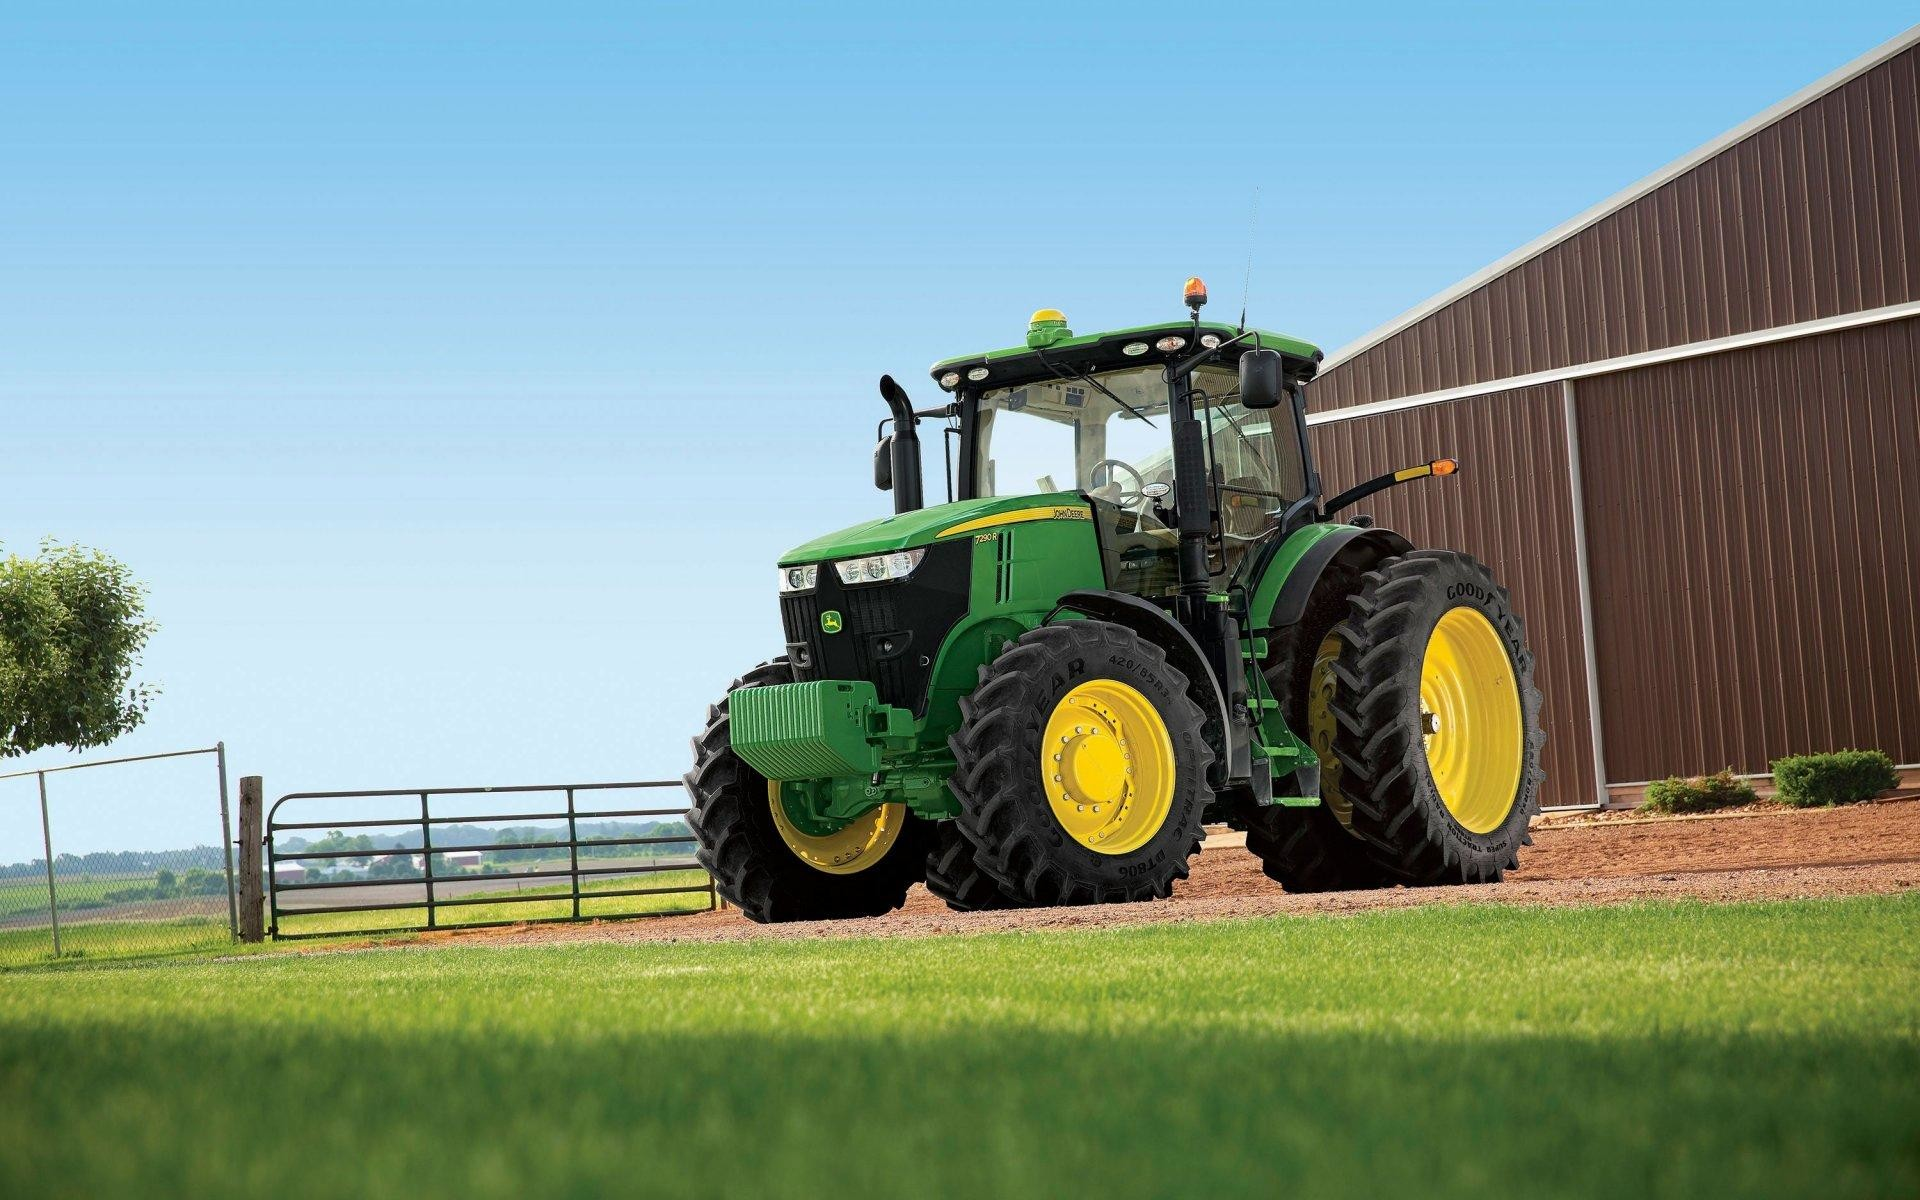 research paper over john deere tractors Tractor research reviews, specifications, prices, research tractors featured tractors tractor classifieds find new and used tractors or post one for sale  john deere 5075gl crop tractor preview john deere introduces the 5075gl specialty tractor for orchard and vineyard growers who want a powerful,.